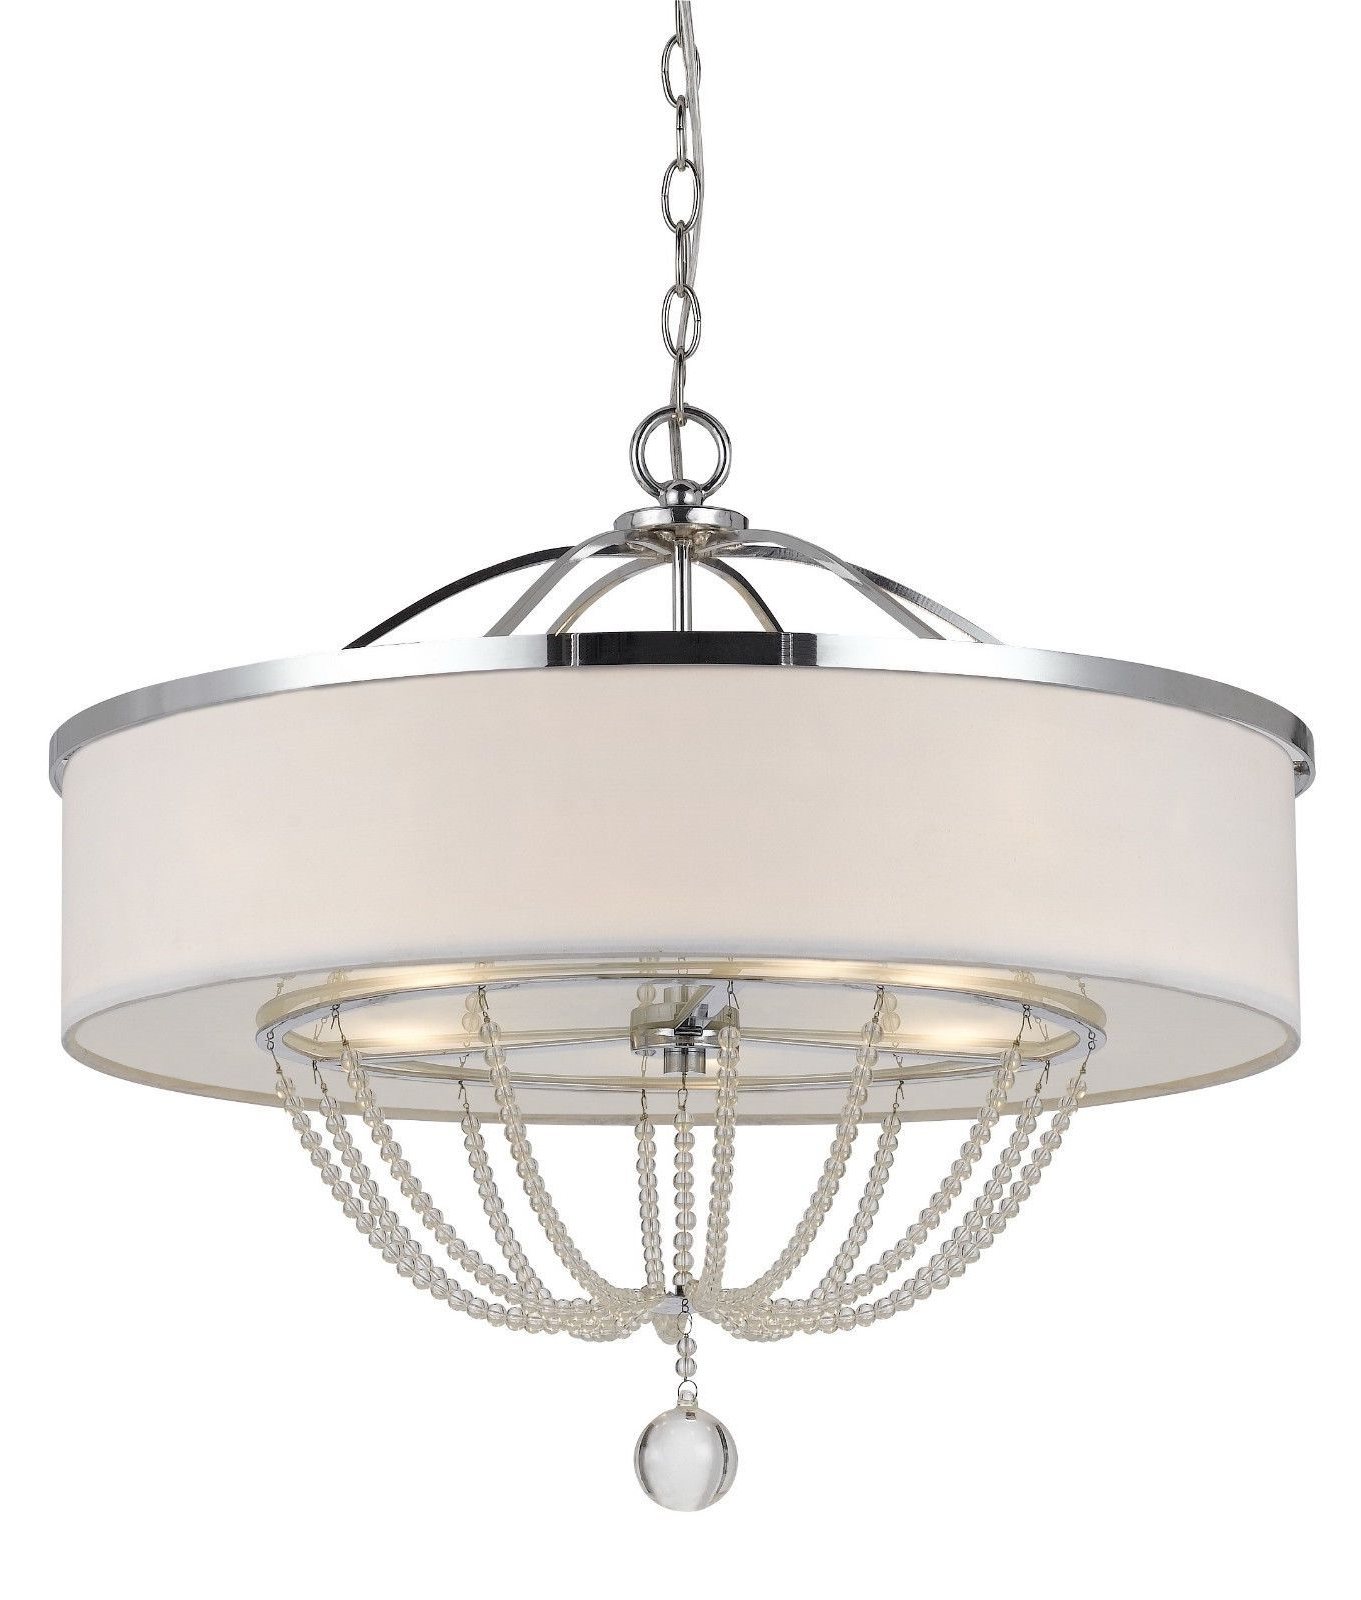 Modern White Chandelier Pertaining To Widely Used Modern White Fabric With Chrome Metal & Crystals Drum Pendant Light (View 3 of 15)